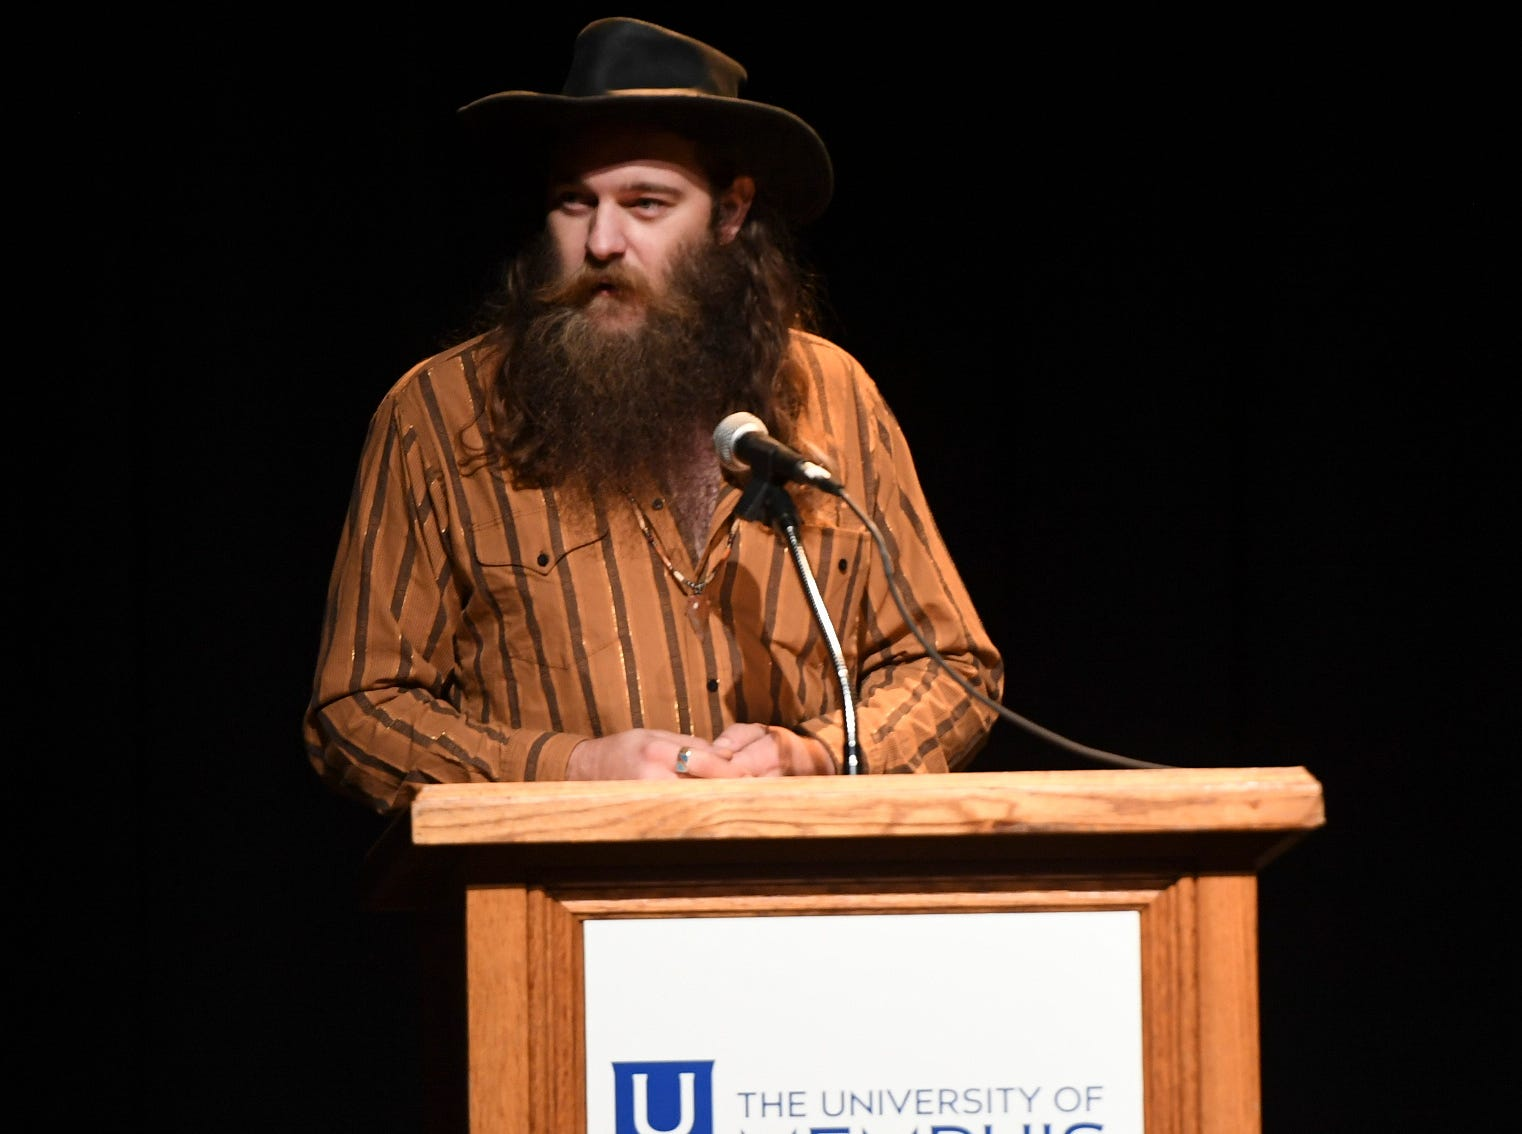 Cotton Clifton speaks on behalf of his band, Cotton Clifton and the Holy Smokes after receiving the award for Indie Artist of the Year at the 2nd Annual Tennessee Music Awards, Monday, October 8, at University of Memphis Lambuth.